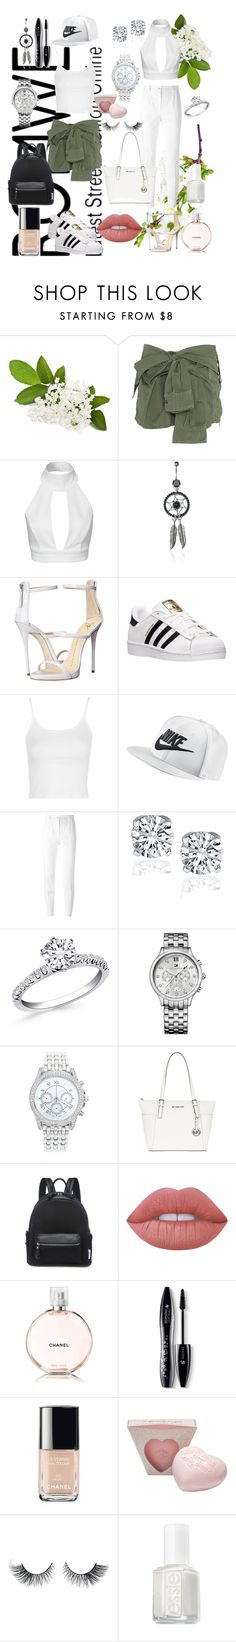 """""""Two sides of white"""" by rowan-na-daw ❤ liked on Polyvore featuring Faith Connexion, AQ/AQ, Giuseppe Zanotti, adidas, Topshop, NIKE, Dolce&Gabbana, Tommy Hilfiger, Lane Bryant and MICHAEL Michael Kors"""